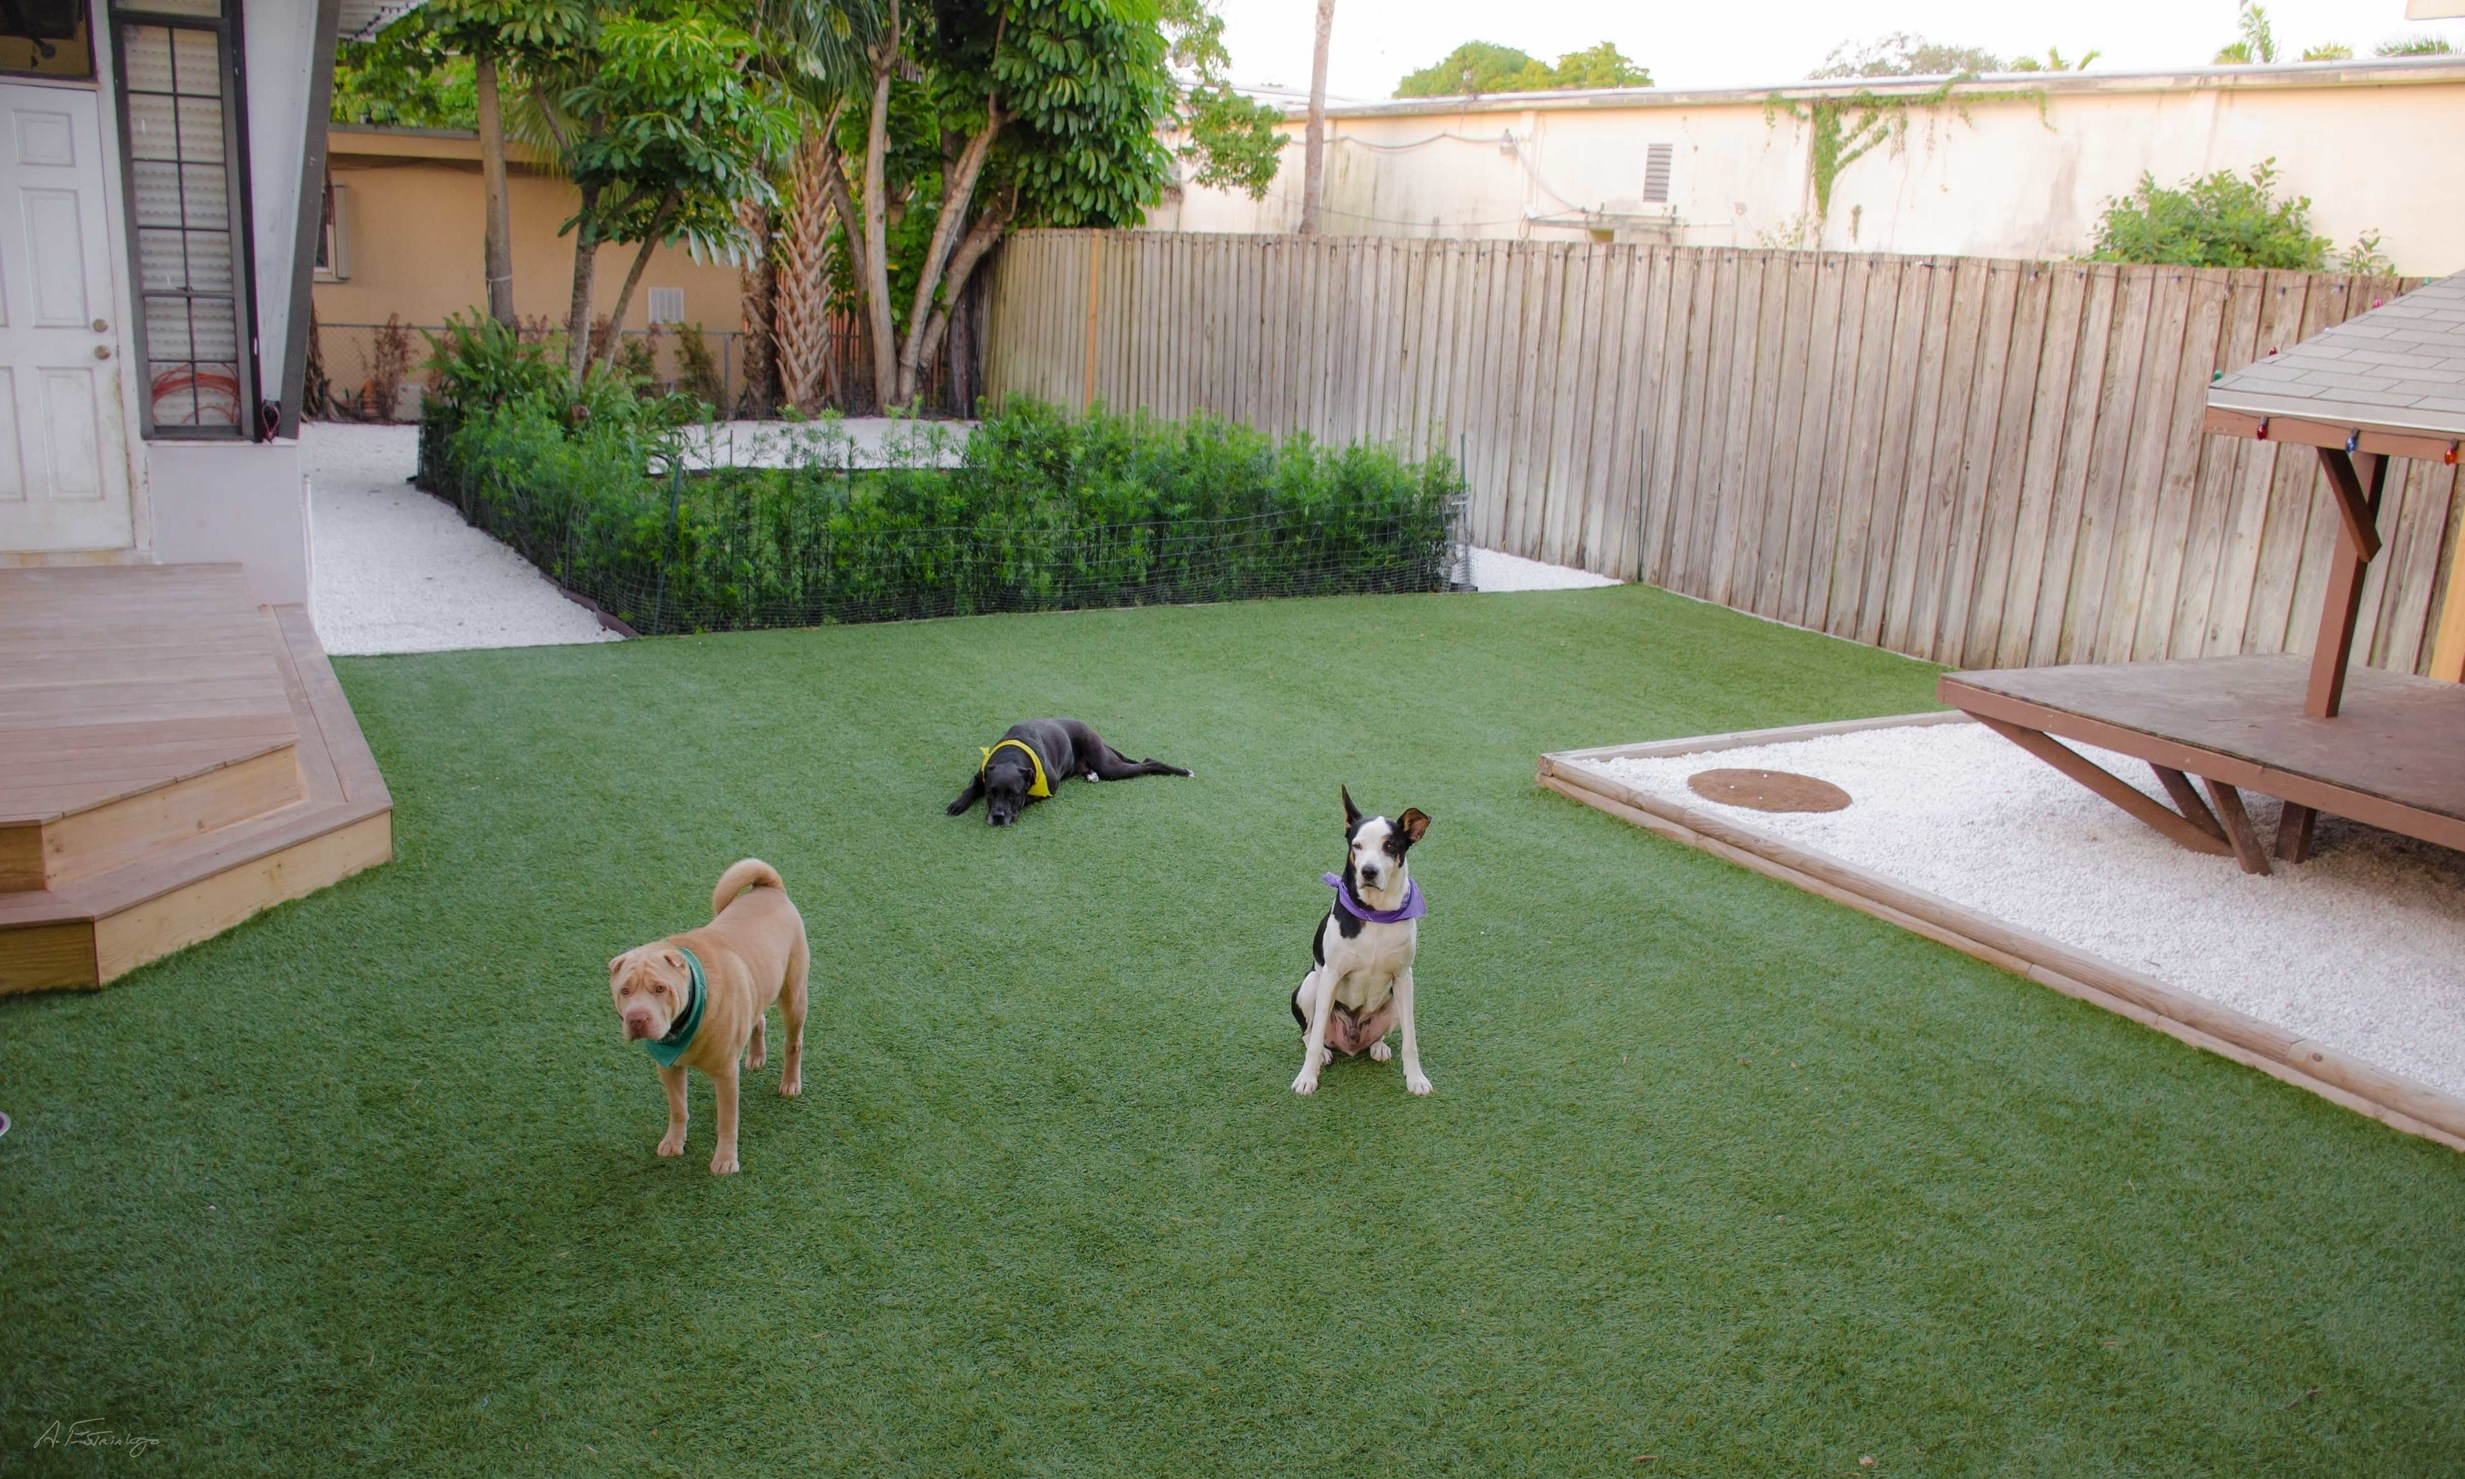 Doggie Dojo website yard -2173.jpg